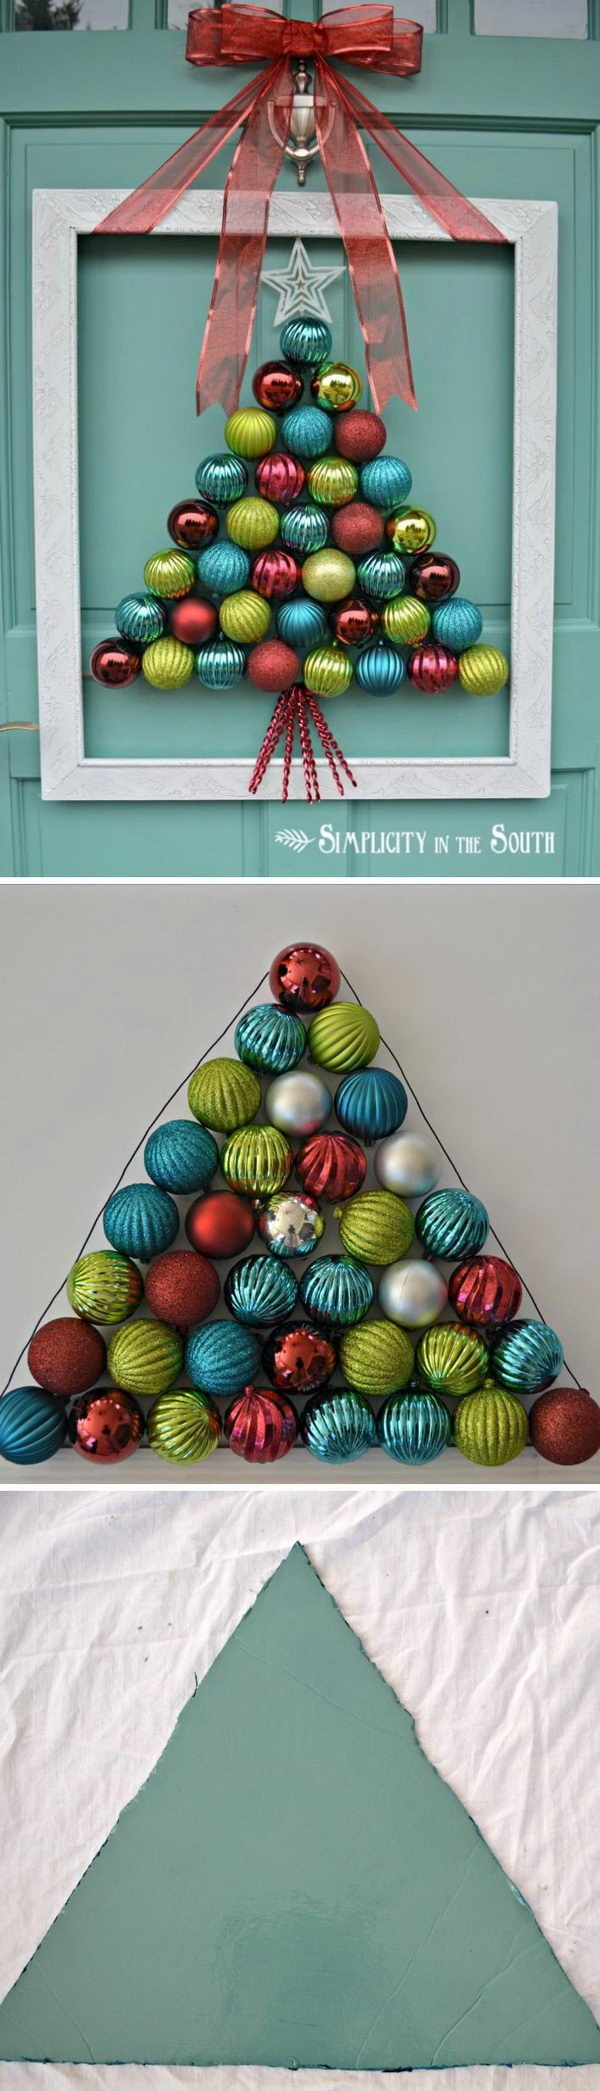 homemade projects ideas for christmas decoration framed christmas tree ornament wreath - Homemade Christmas Decorations Ideas